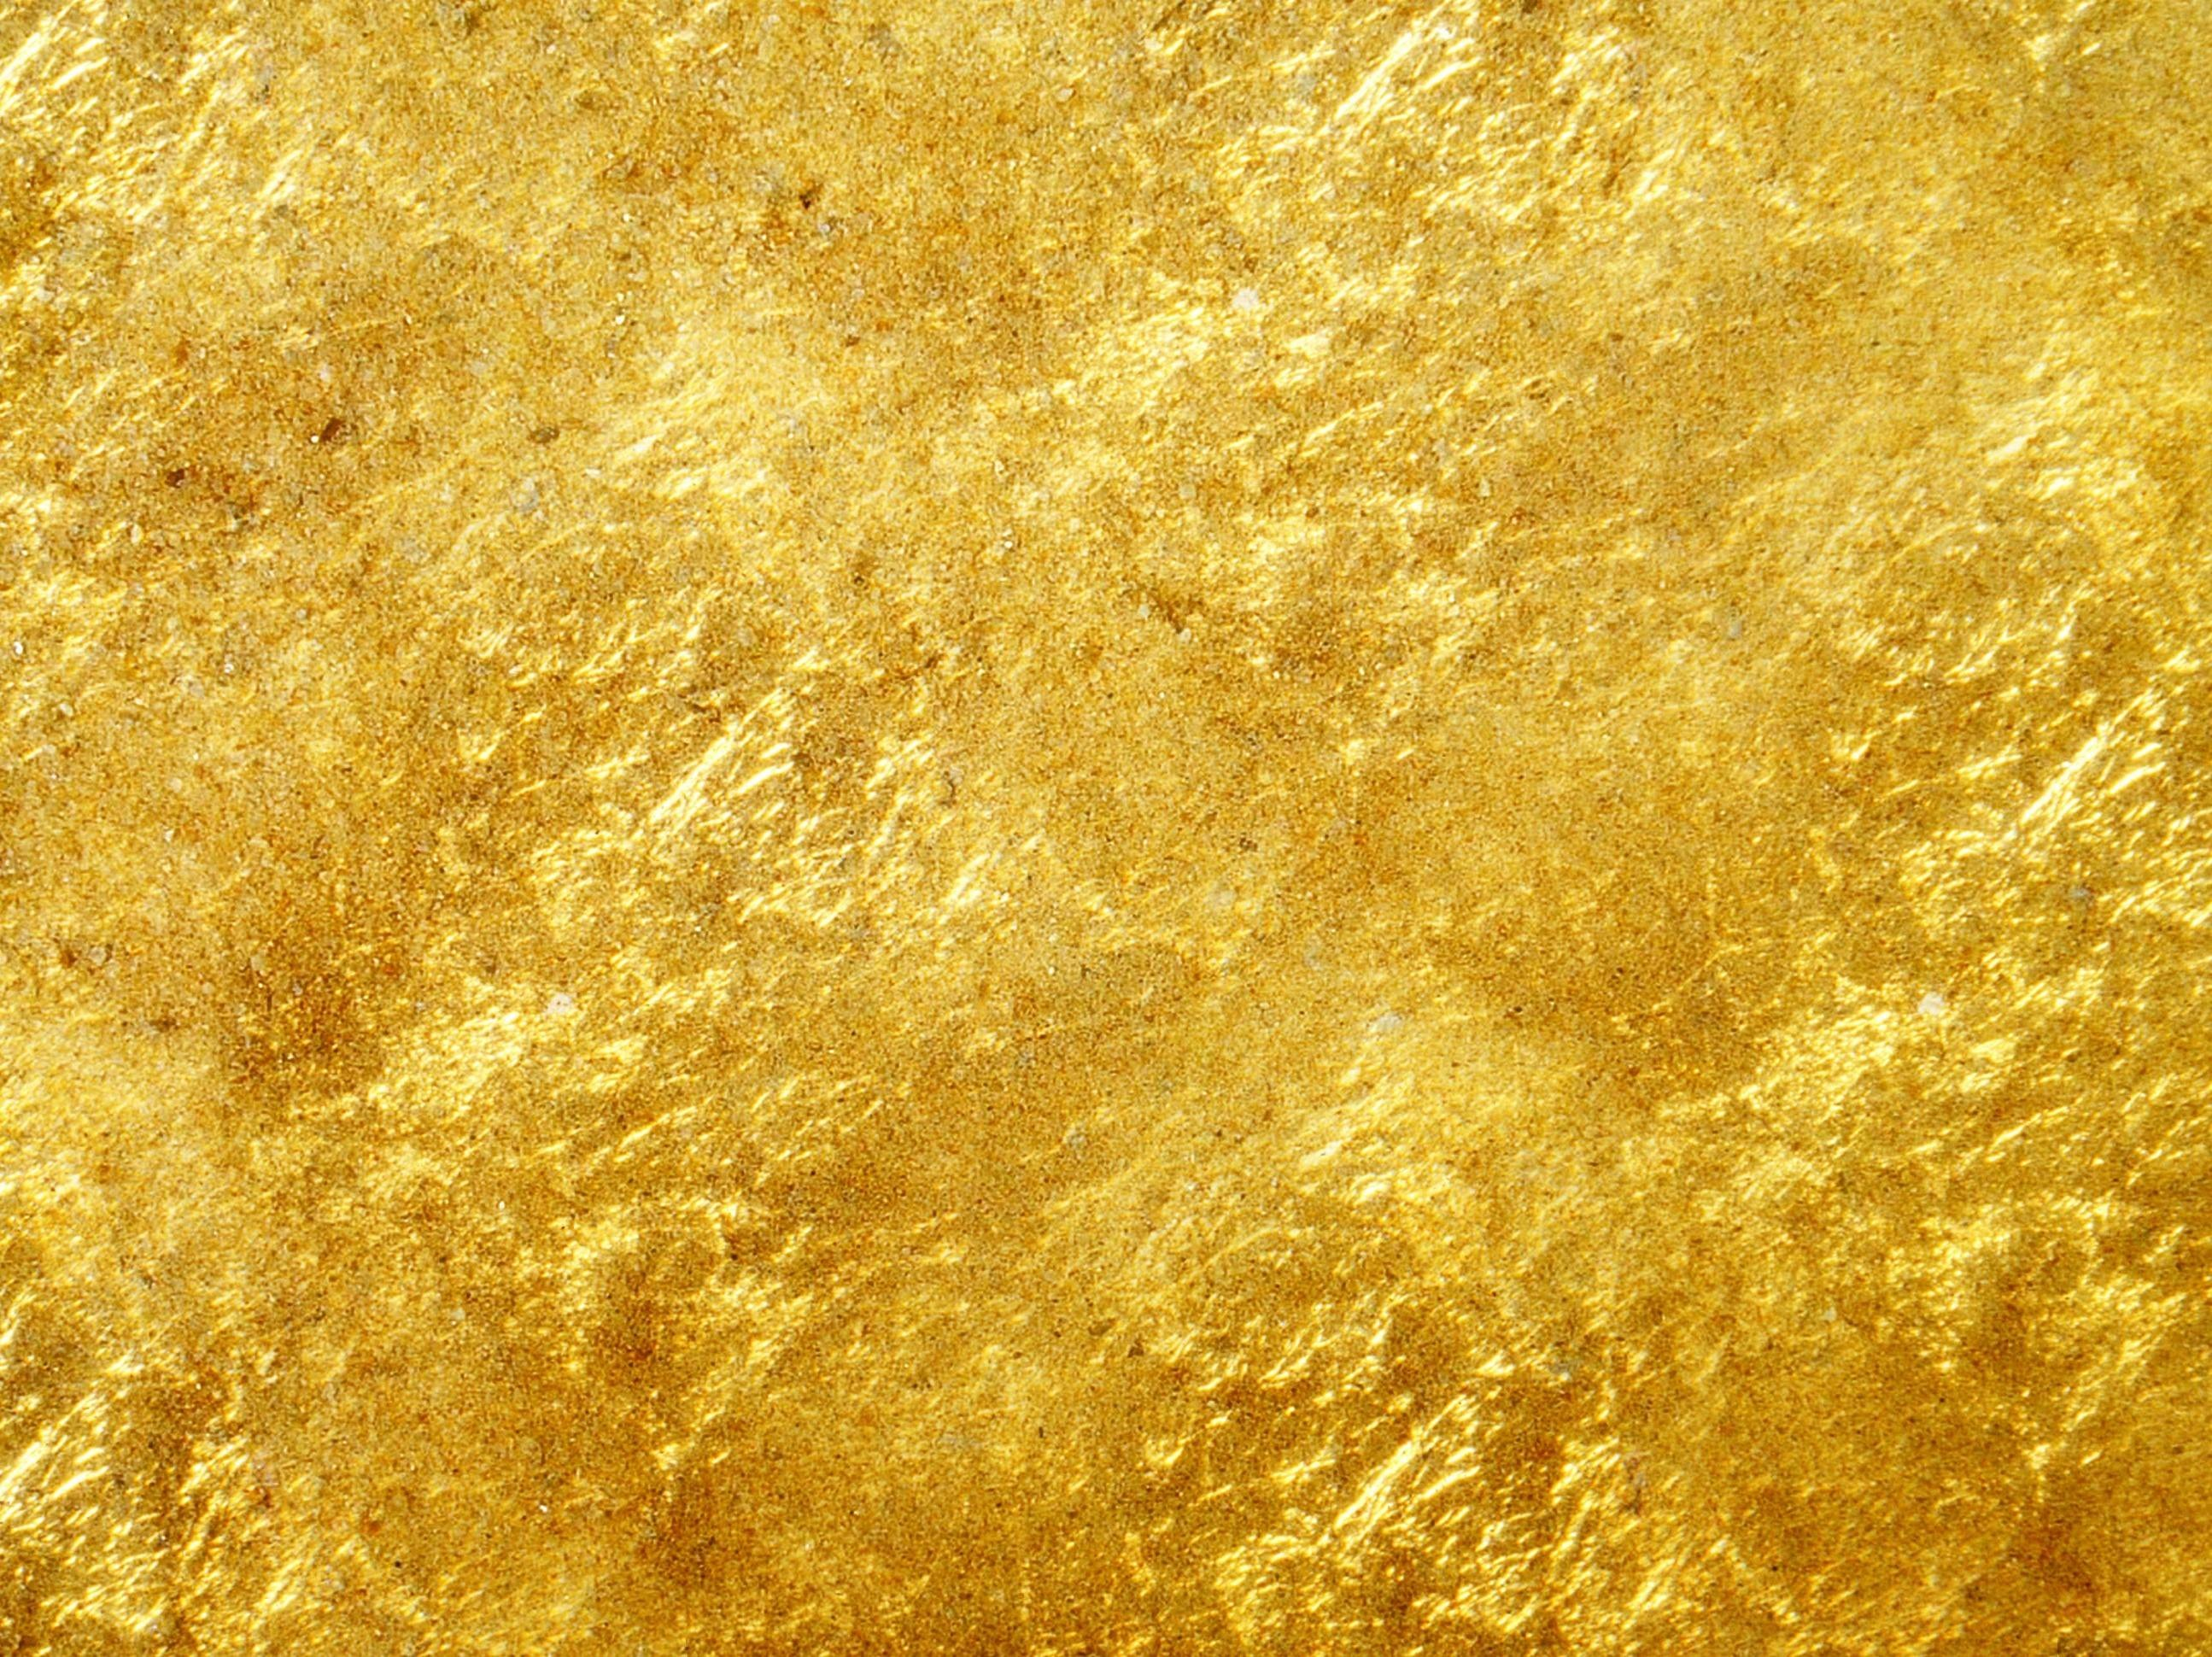 2590x1940 gold texture - Google Search